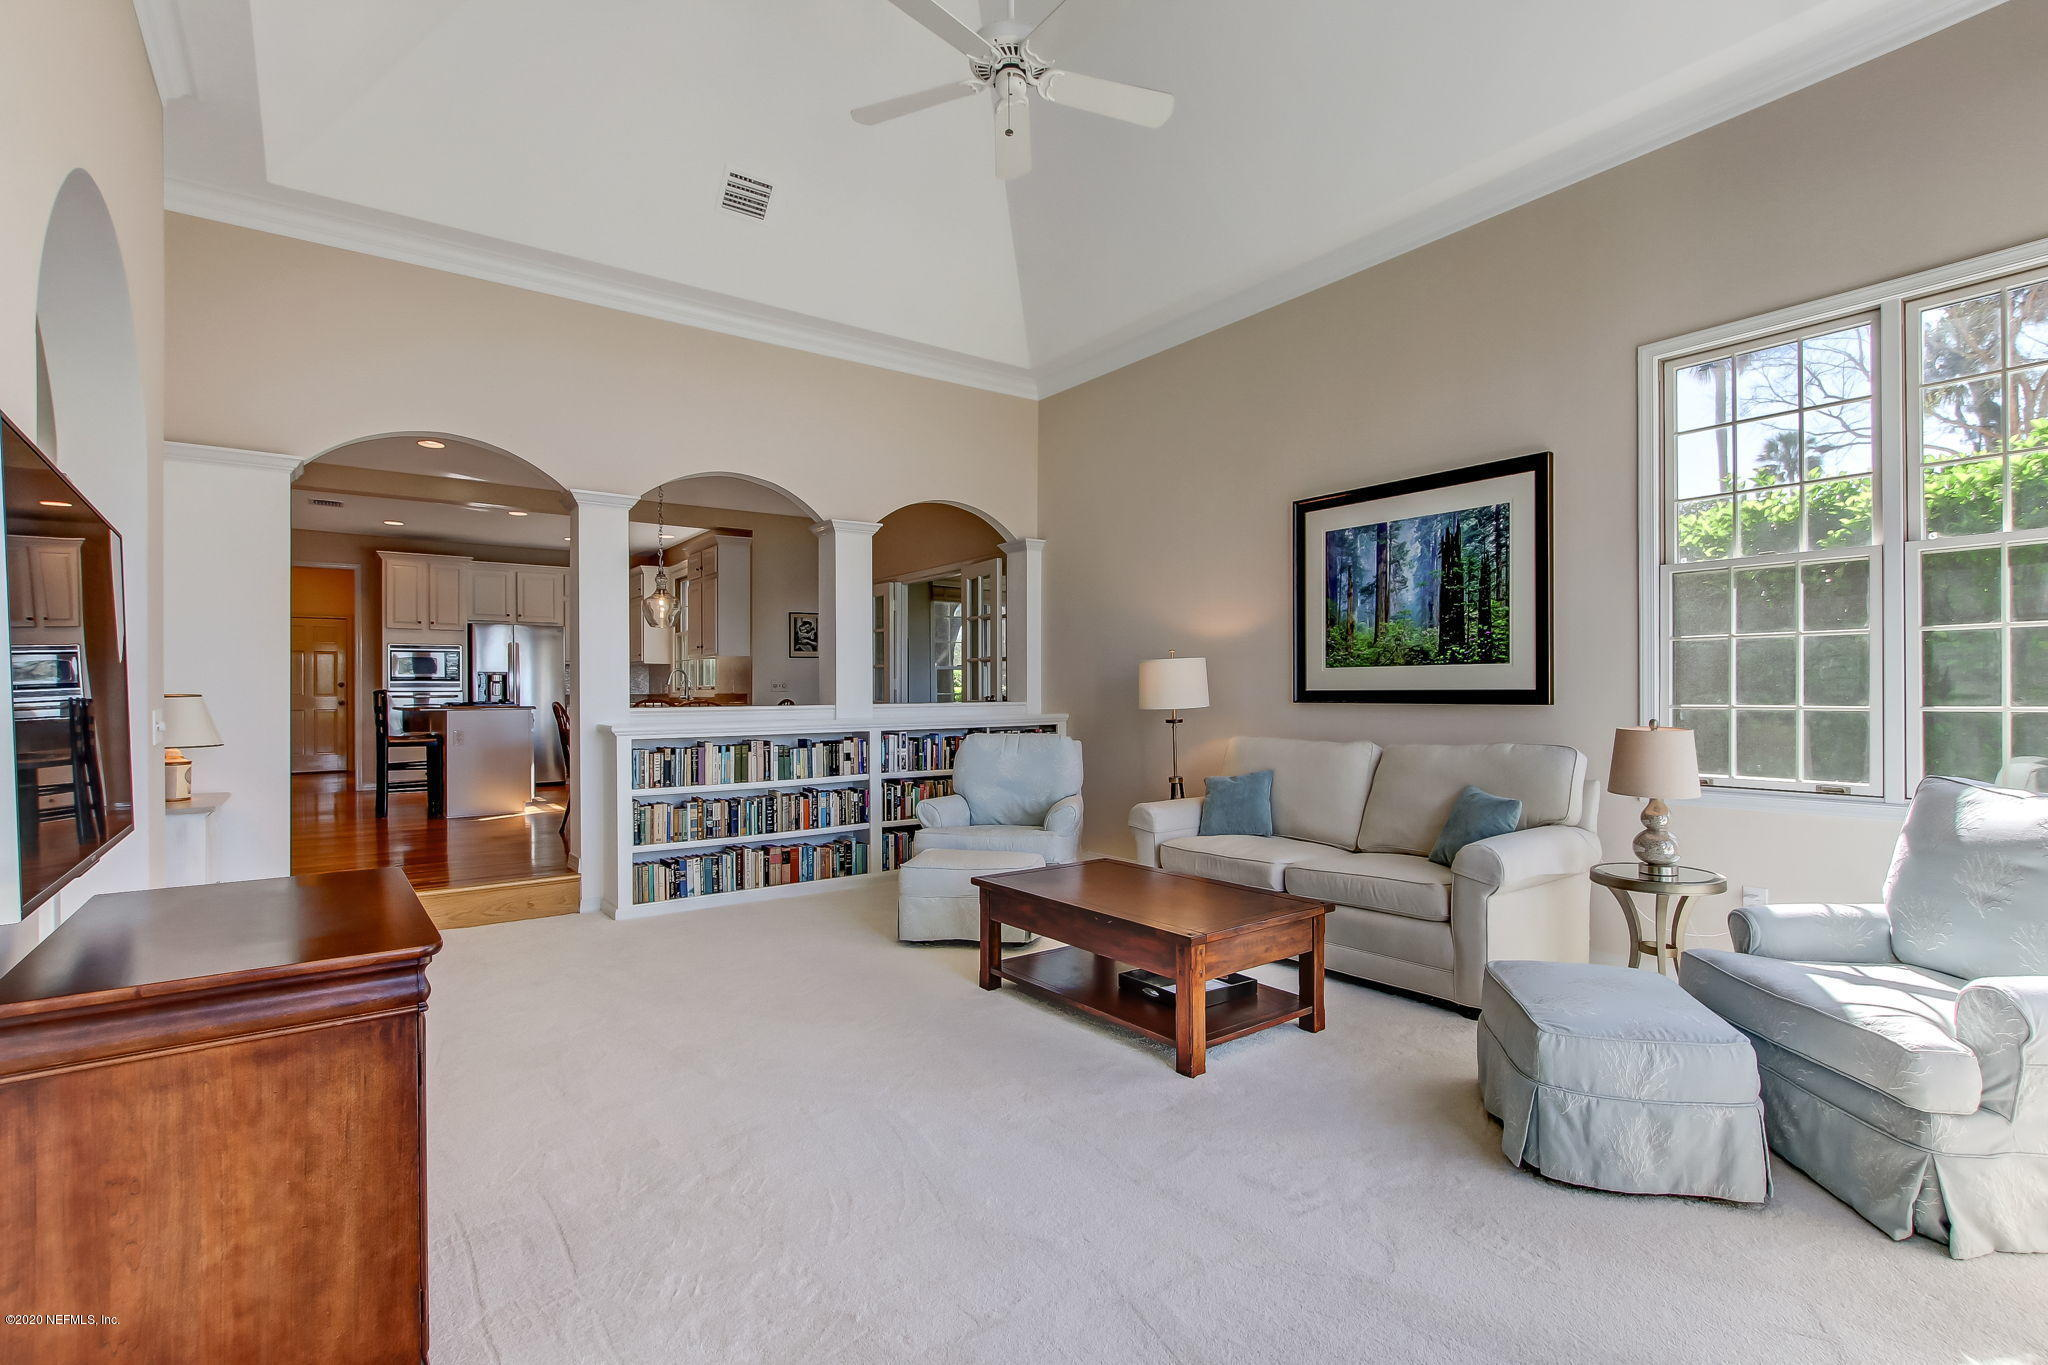 104 TROON POINT, PONTE VEDRA BEACH, FLORIDA 32082, 4 Bedrooms Bedrooms, ,4 BathroomsBathrooms,Residential,For sale,TROON POINT,1040809